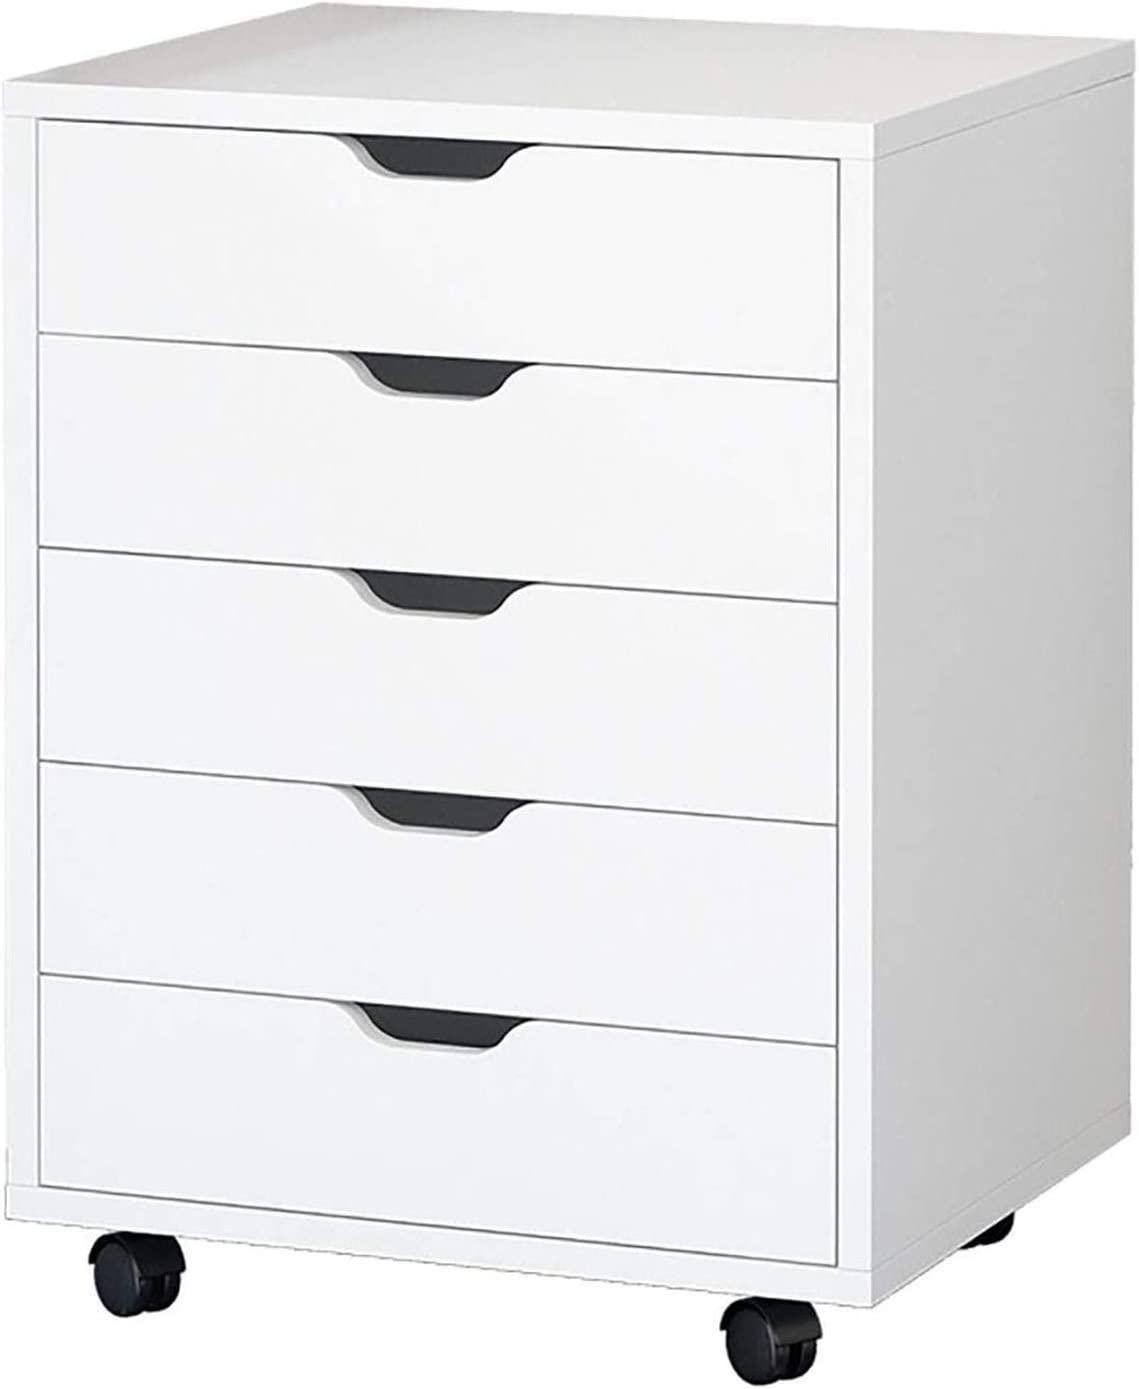 HMBB Office Same day shipping Storage Cabinet Cheap SALE Start 5 Wheels with Drawers Filing